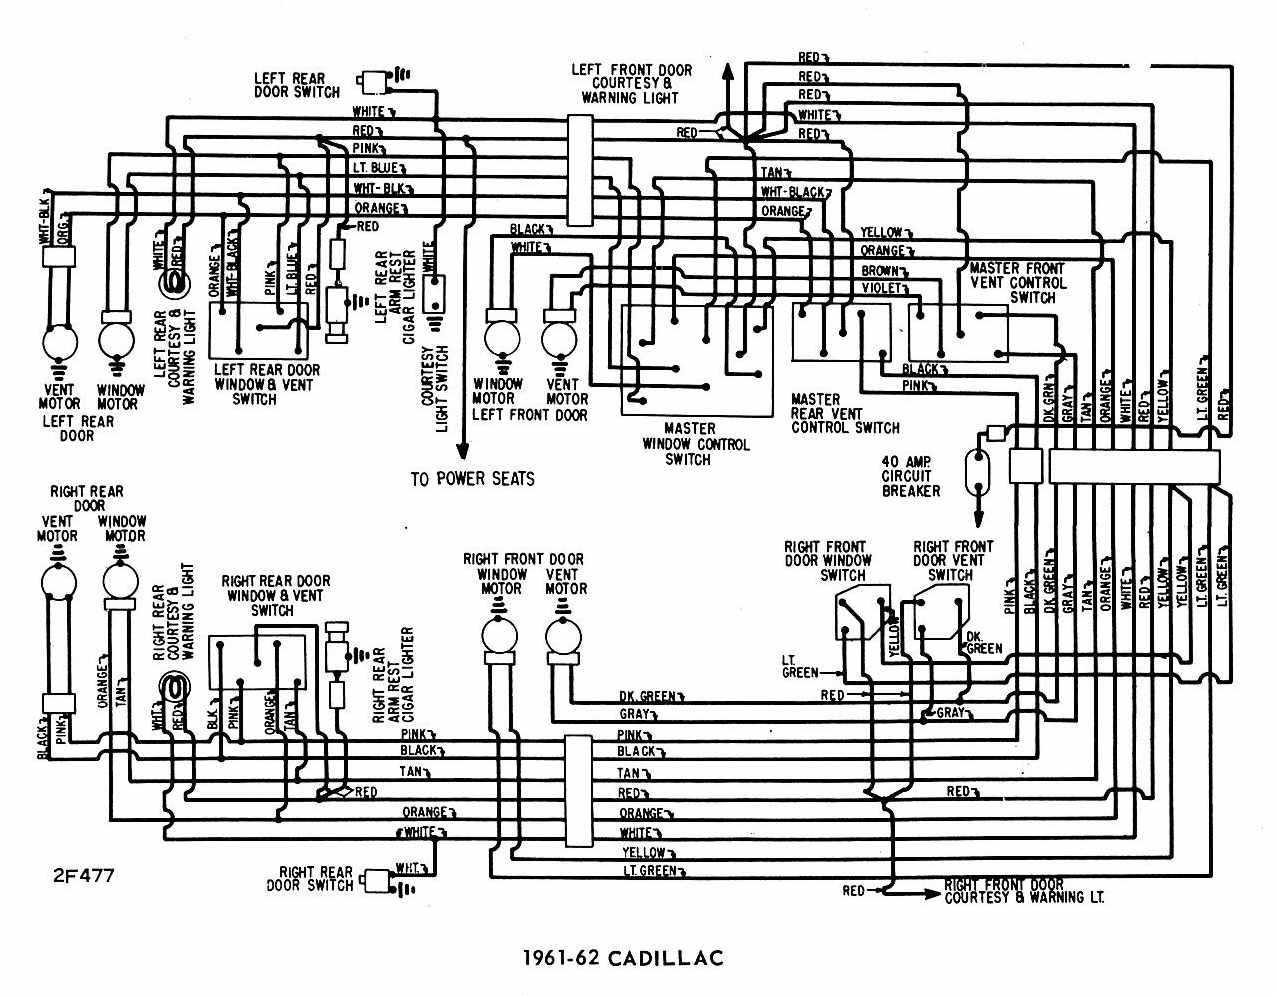 97 Cadillac Deville Fuse Box Diagram Simple Guide About Wiring Super Nintendo Sts In The Back Seat 1997